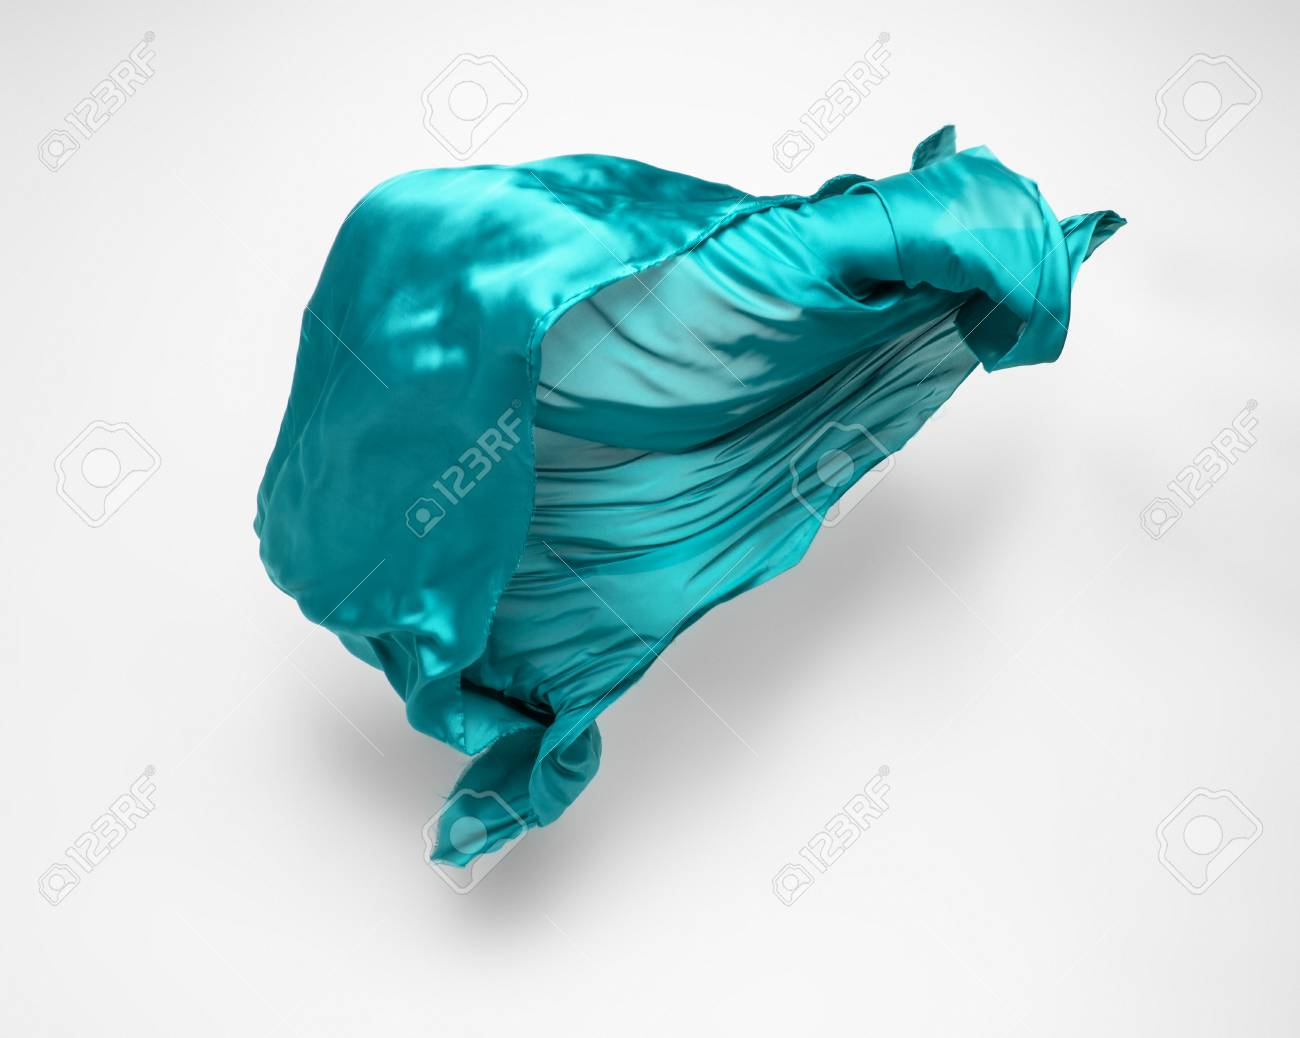 abstract piece of teal fabric flying, high-speed studio shot - 122260510